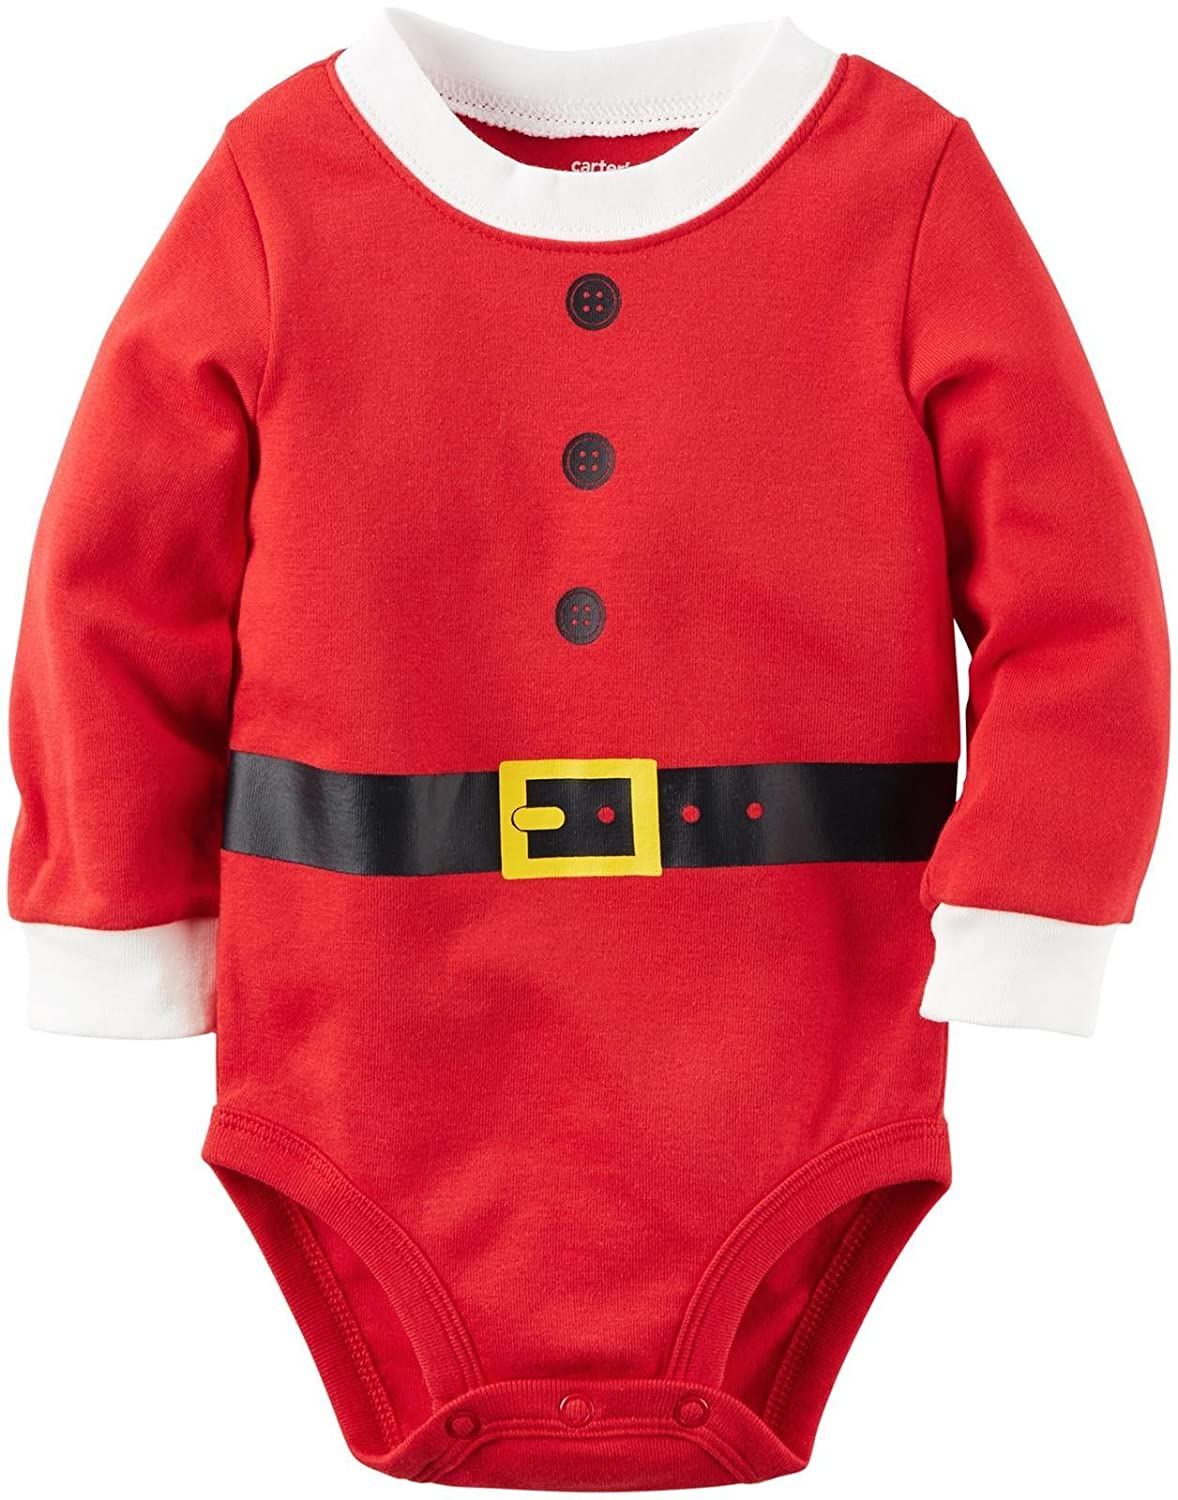 Amazon.com: Carters bebé unisex Body coleccionable de Papá ...